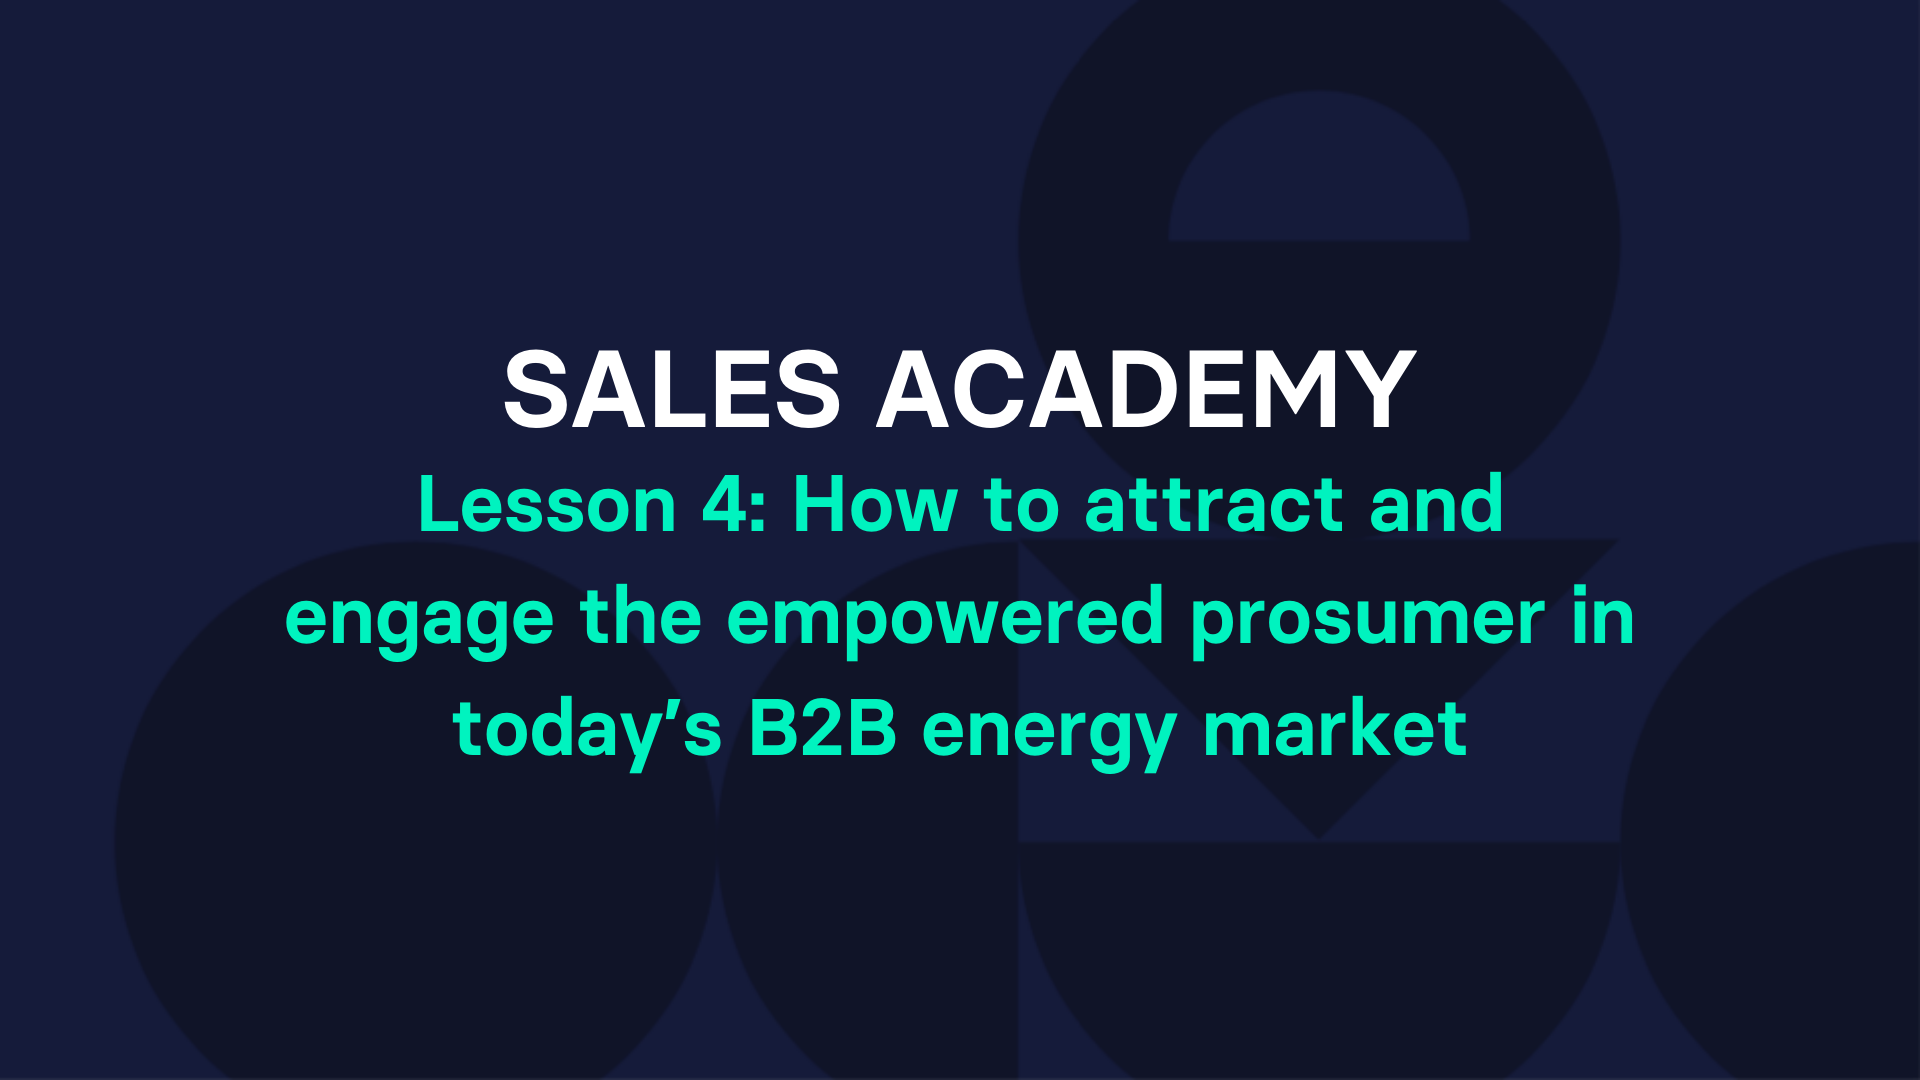 Lesson 4: How to attract and engage the empowered prosumer in today's B2B energy market